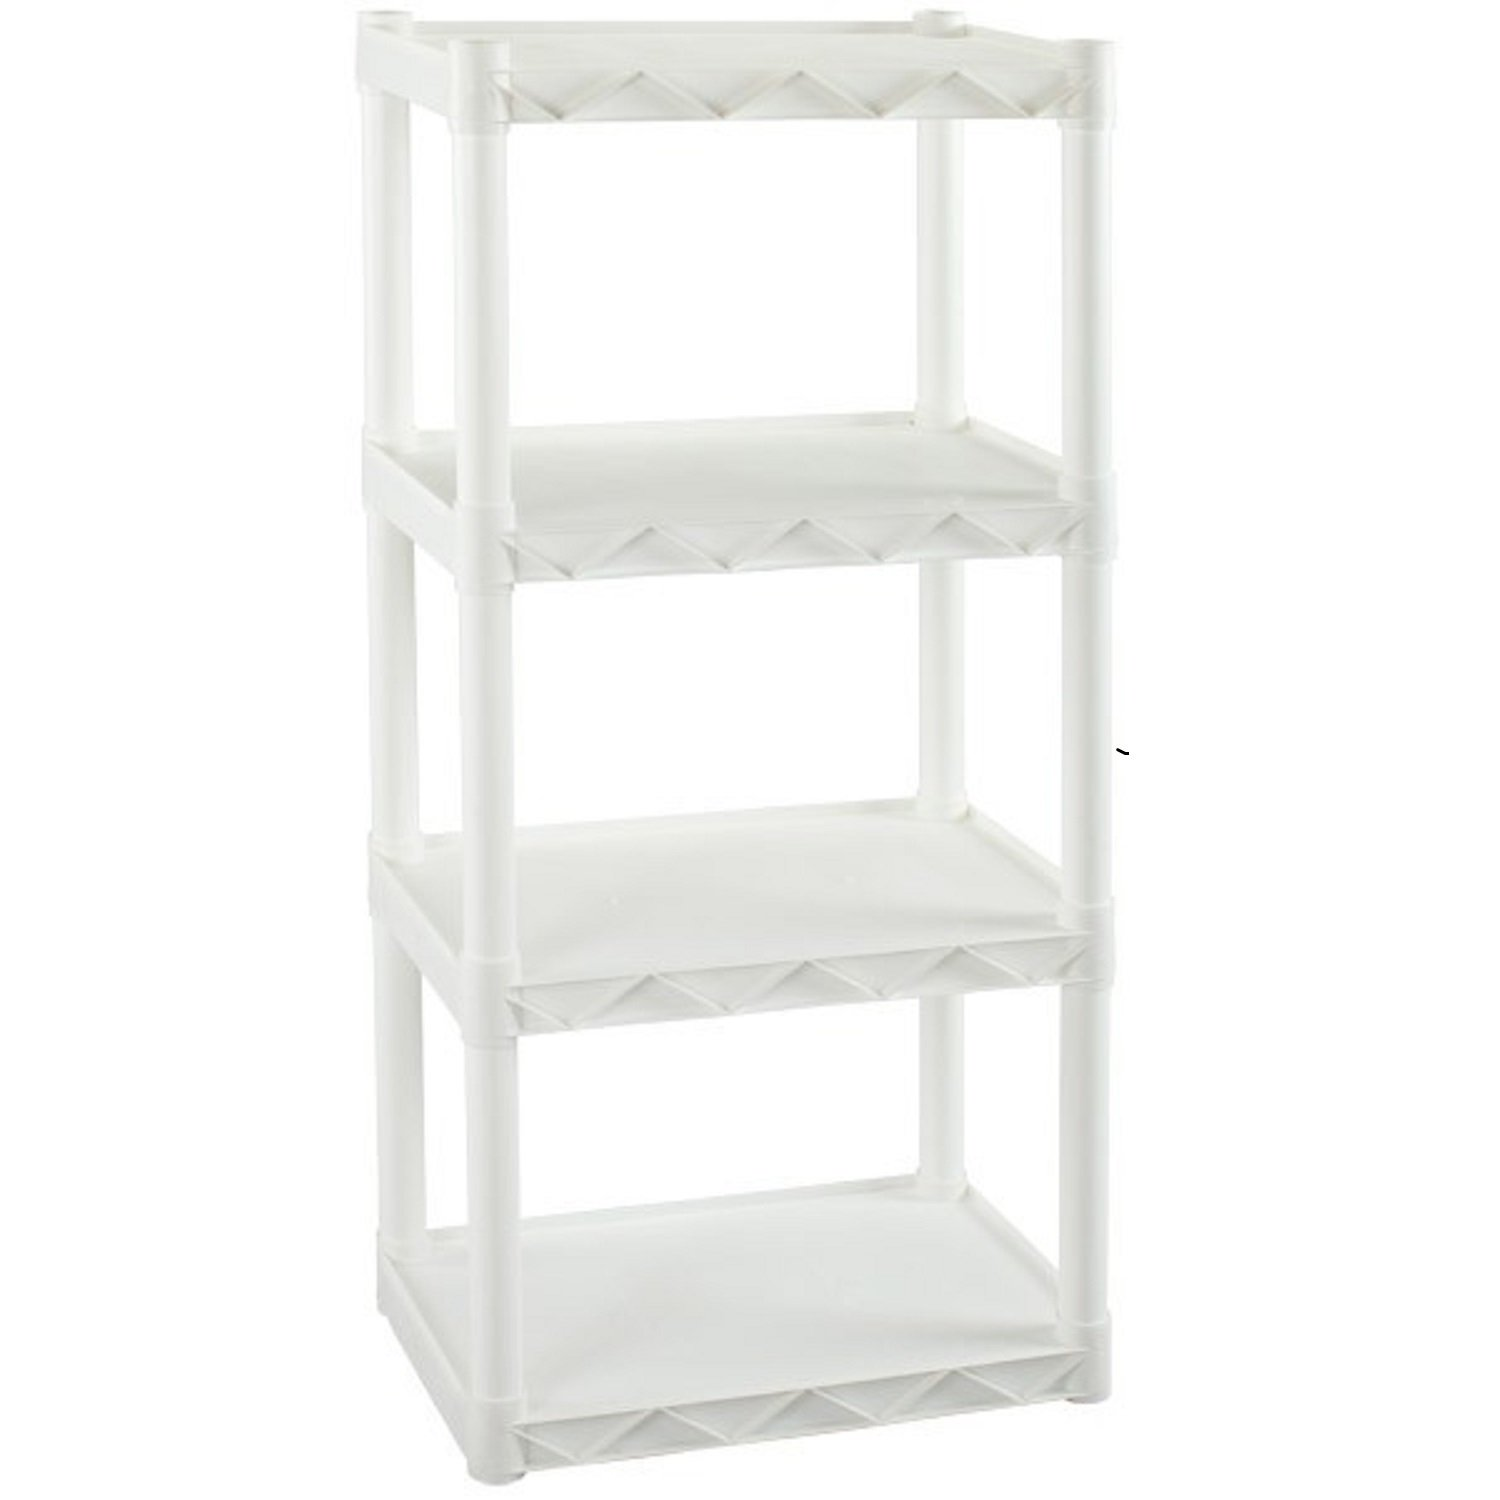 "Plano 917702 Molding 4 Shelf Shelving Unit, 22"" x 14.25"", White"